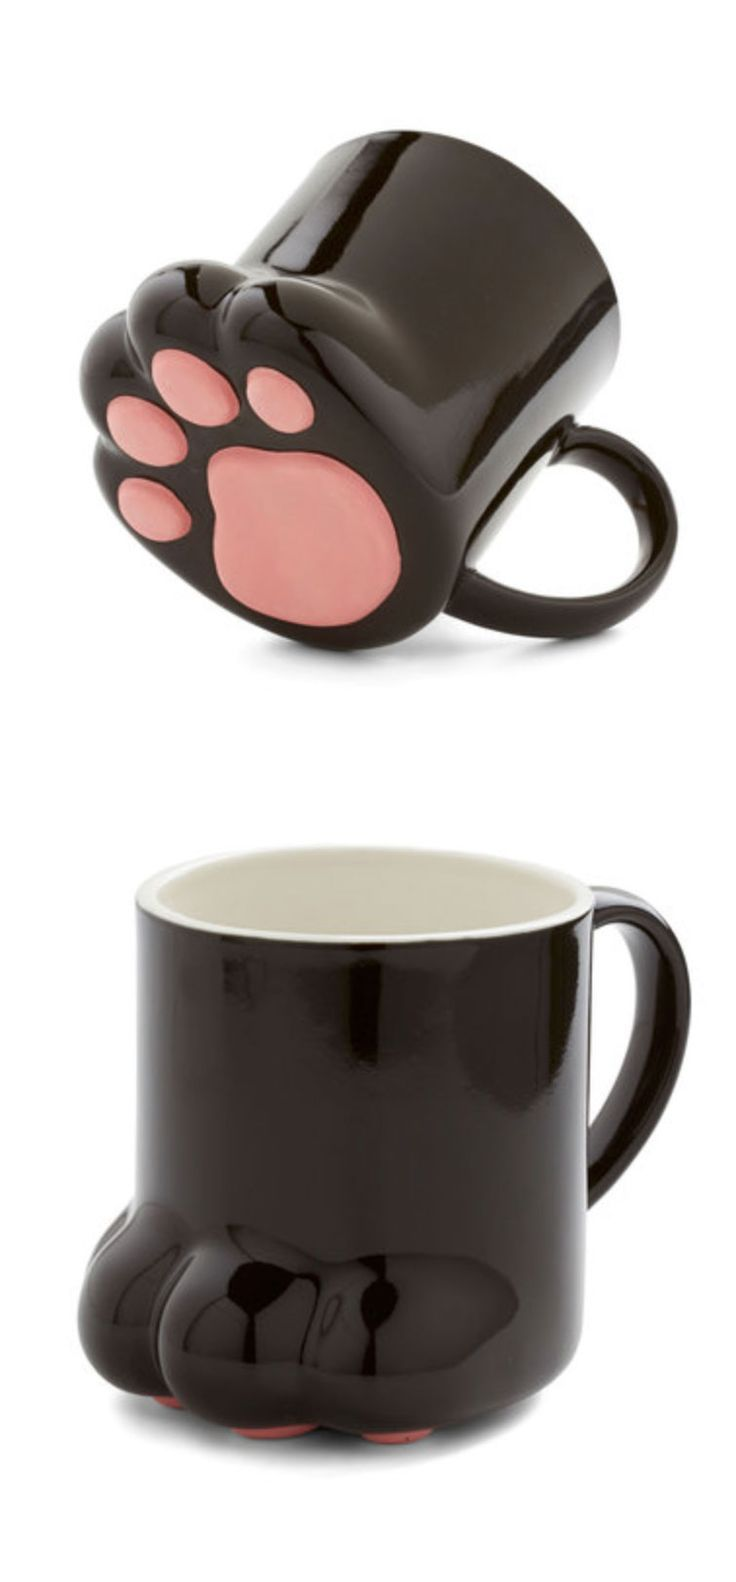 tasse de caf bear ideas pet pinterest de cafe caf y tazas originales. Black Bedroom Furniture Sets. Home Design Ideas